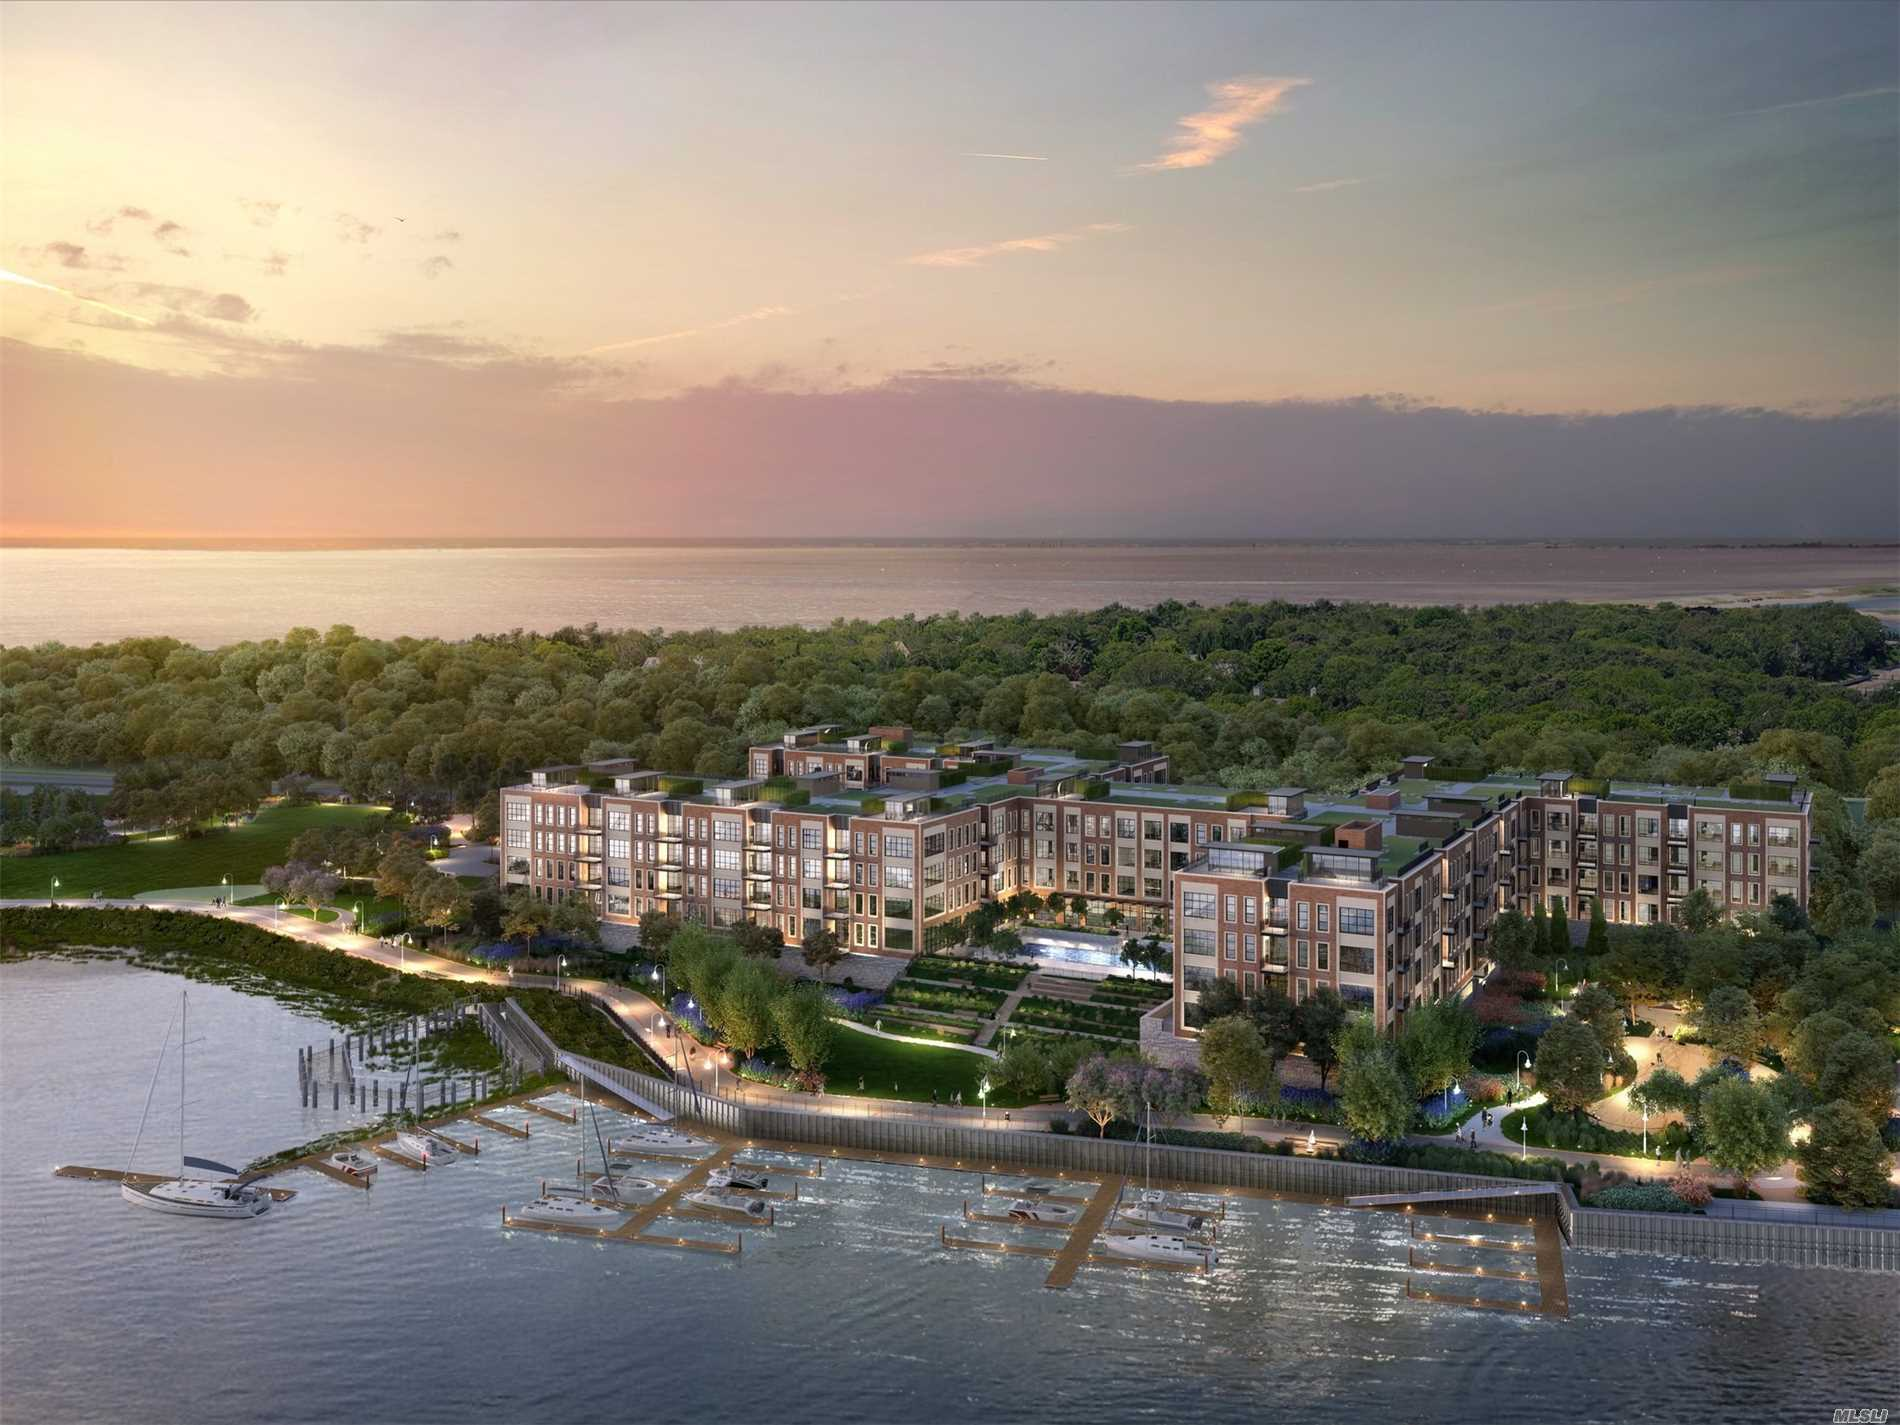 Property for sale at 100 Garvies Point Road # 1005, Glen Cove NY 11542, Glen Cove,  New York 11542